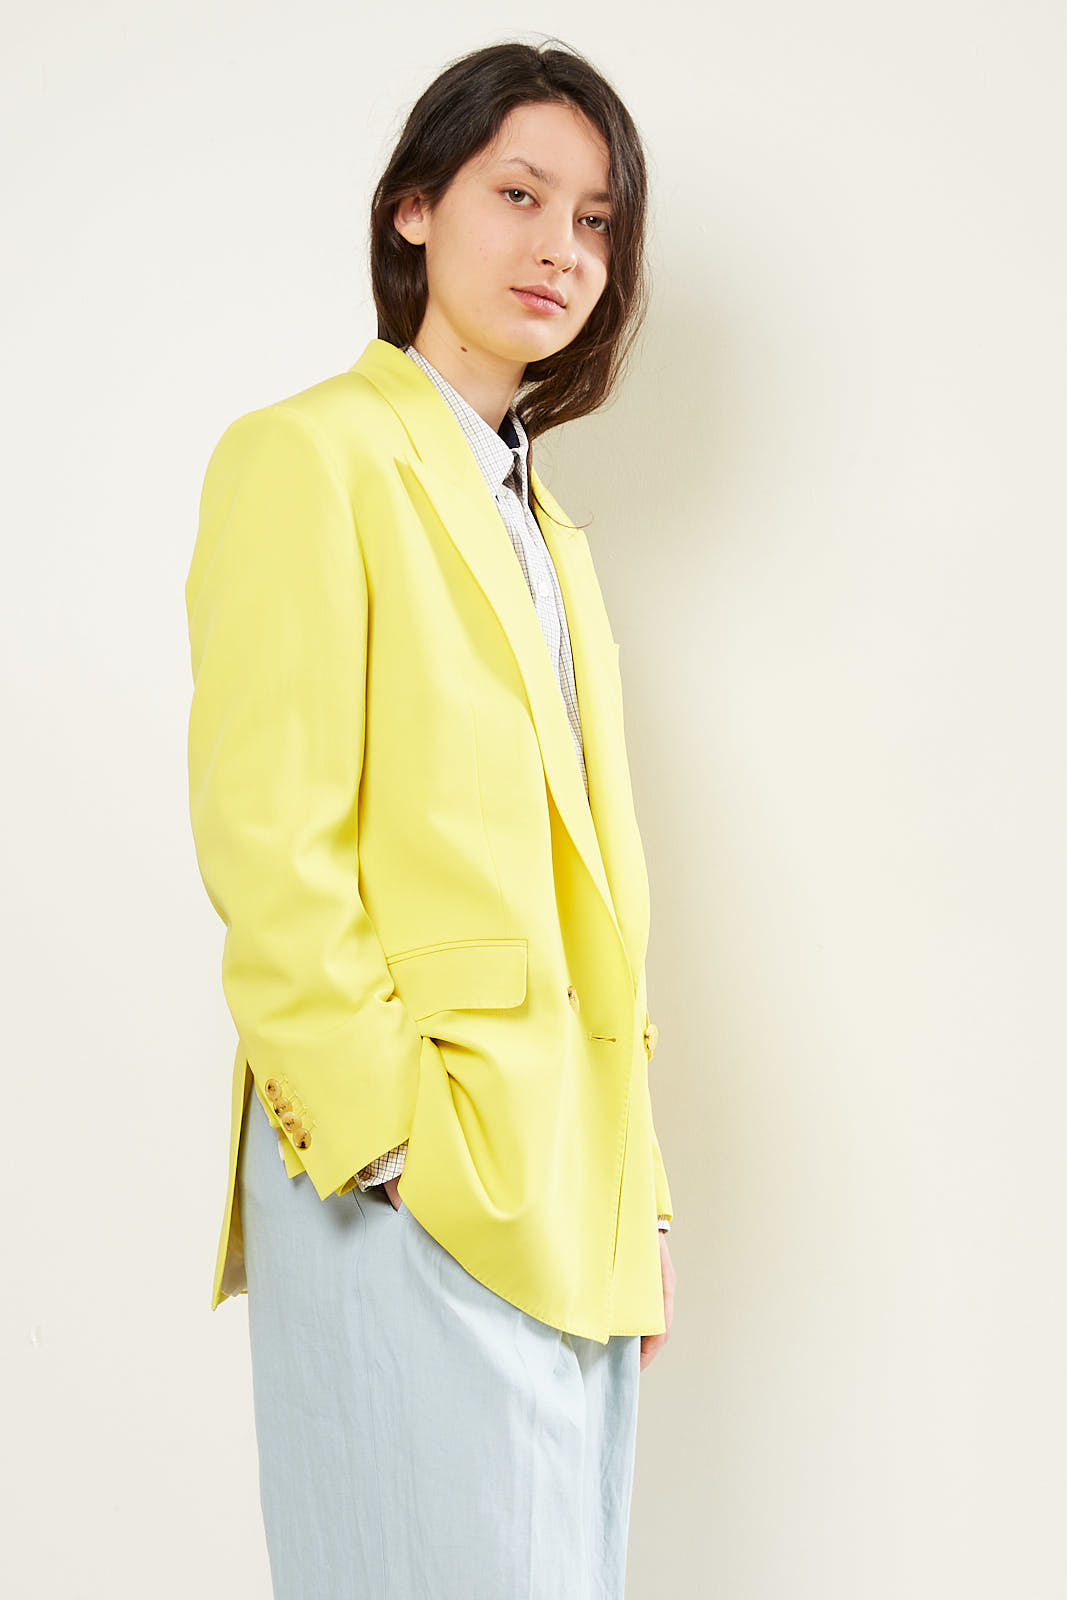 Paul Smith - womens jacket